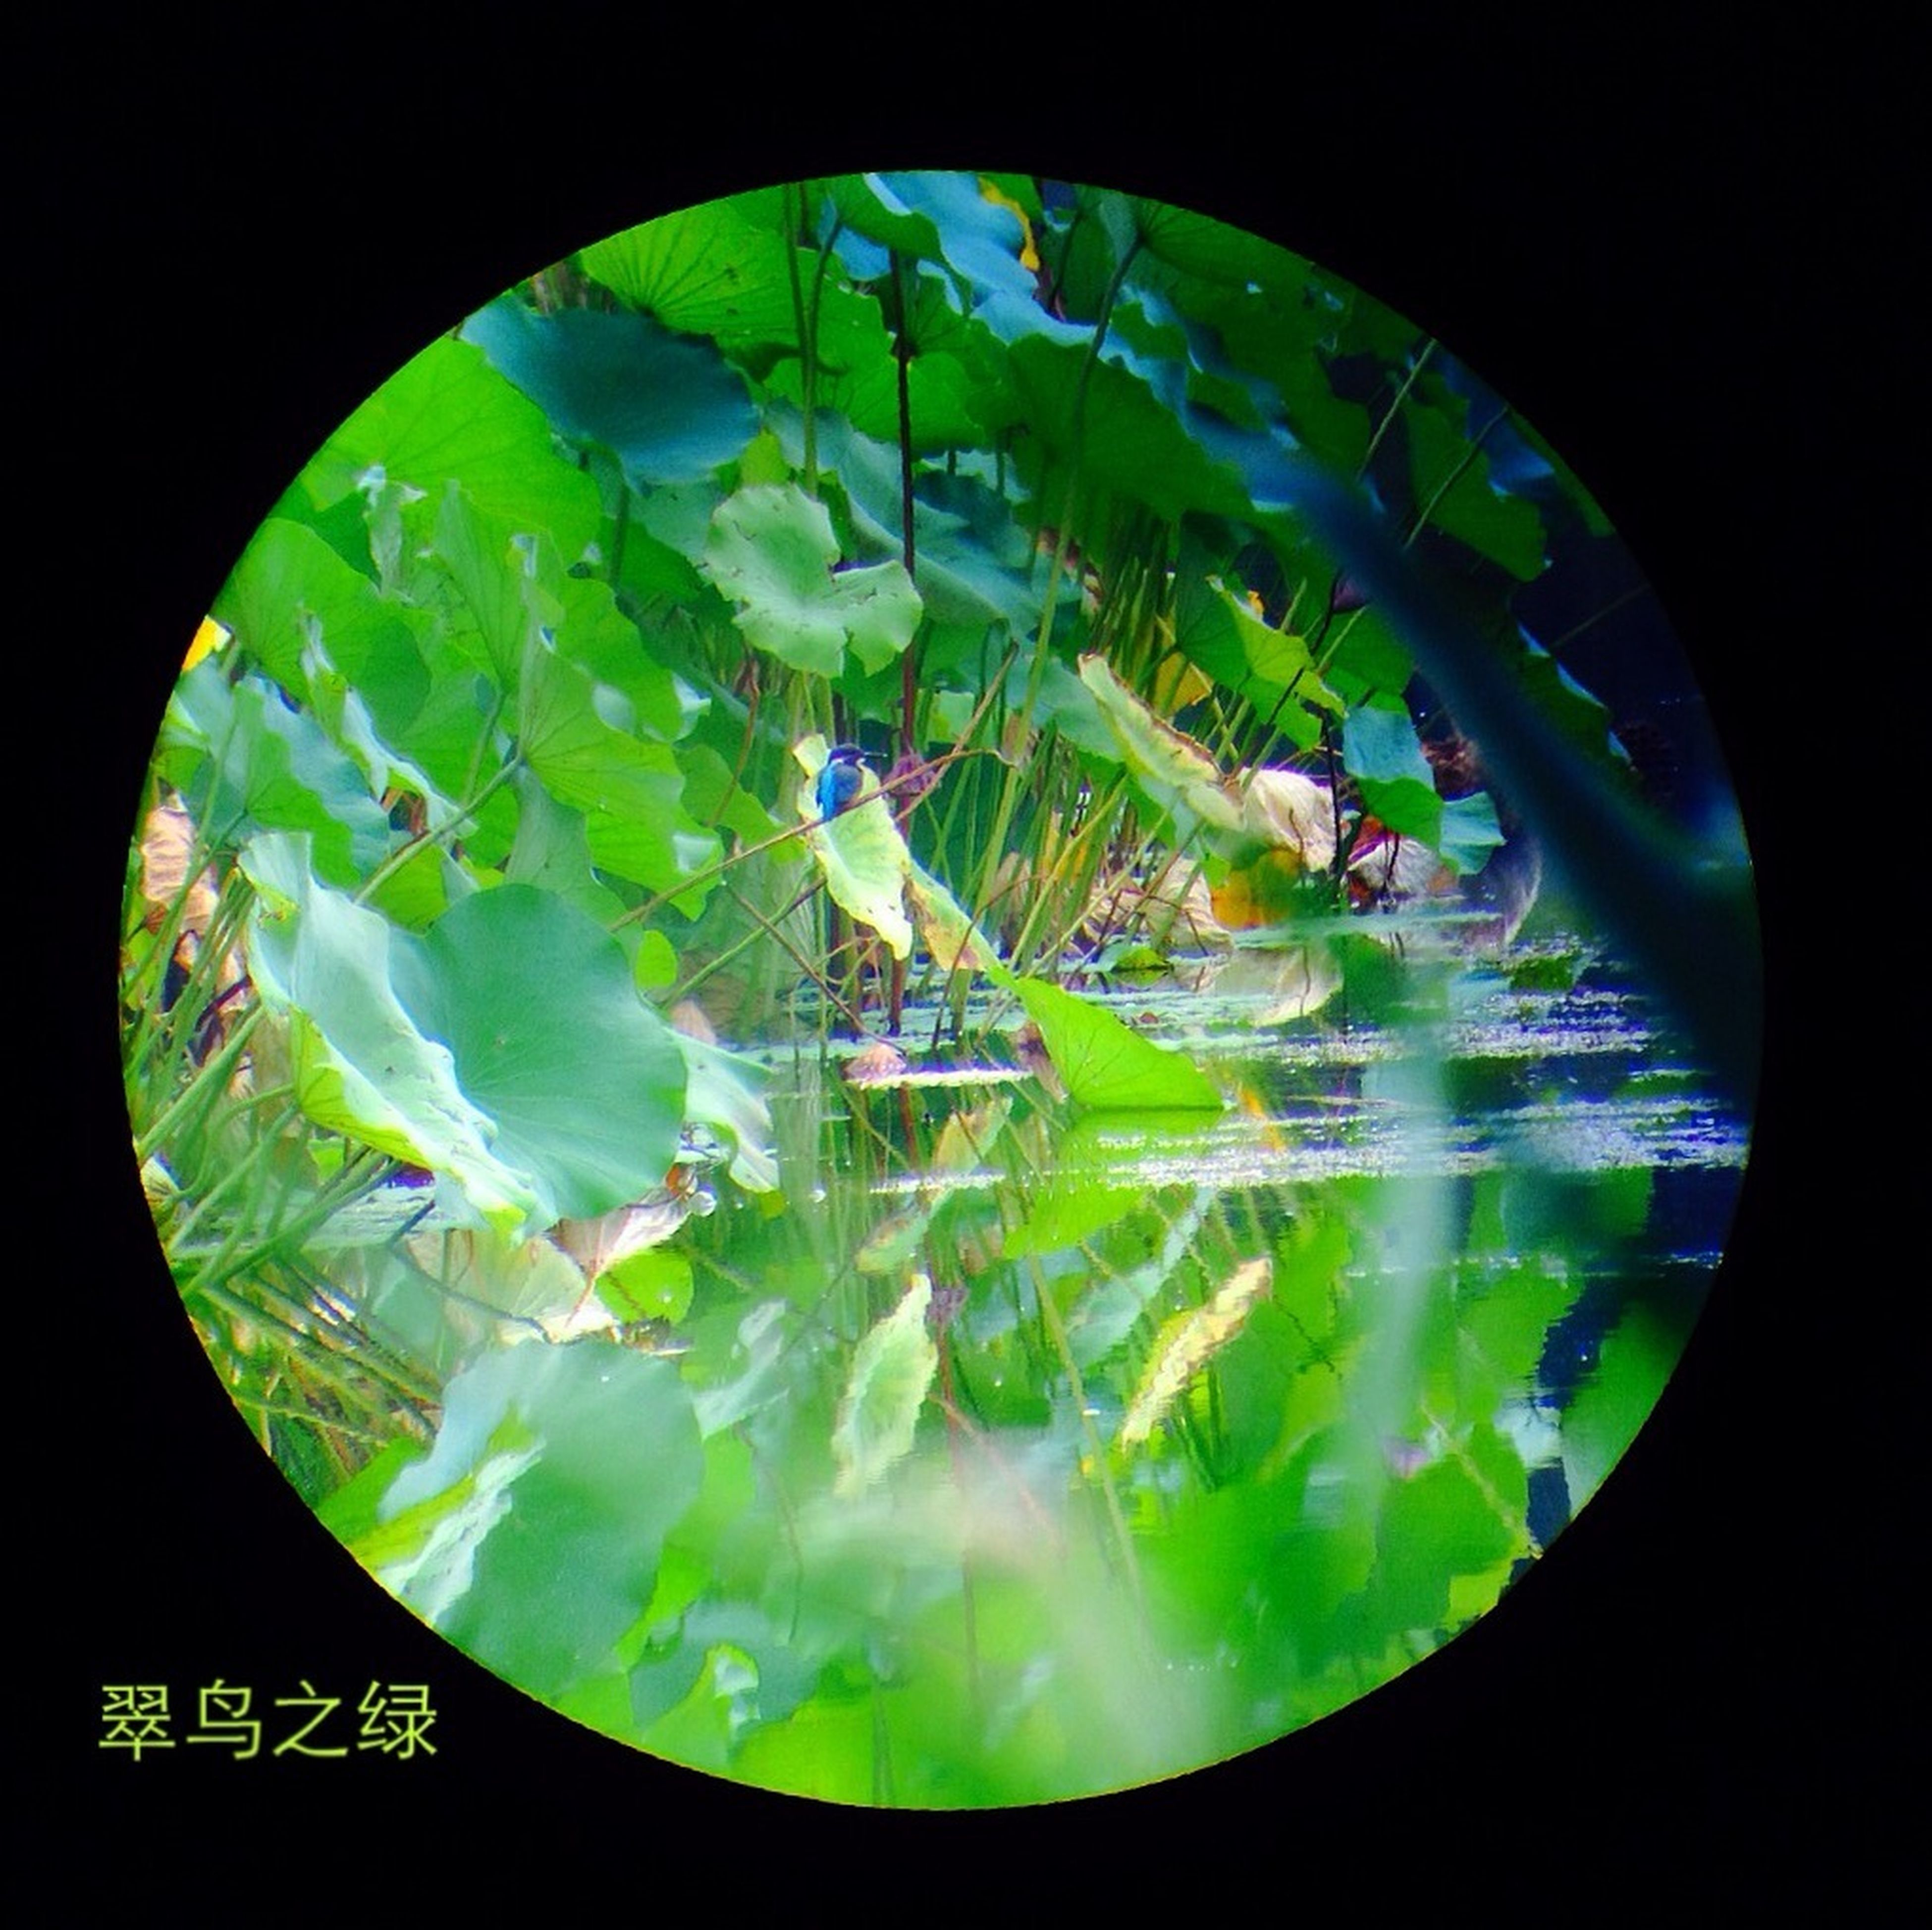 green color, circle, water, indoors, reflection, transparent, glass - material, nature, close-up, geometric shape, no people, night, beauty in nature, leaf, auto post production filter, high angle view, pond, fish-eye lens, sphere, tree